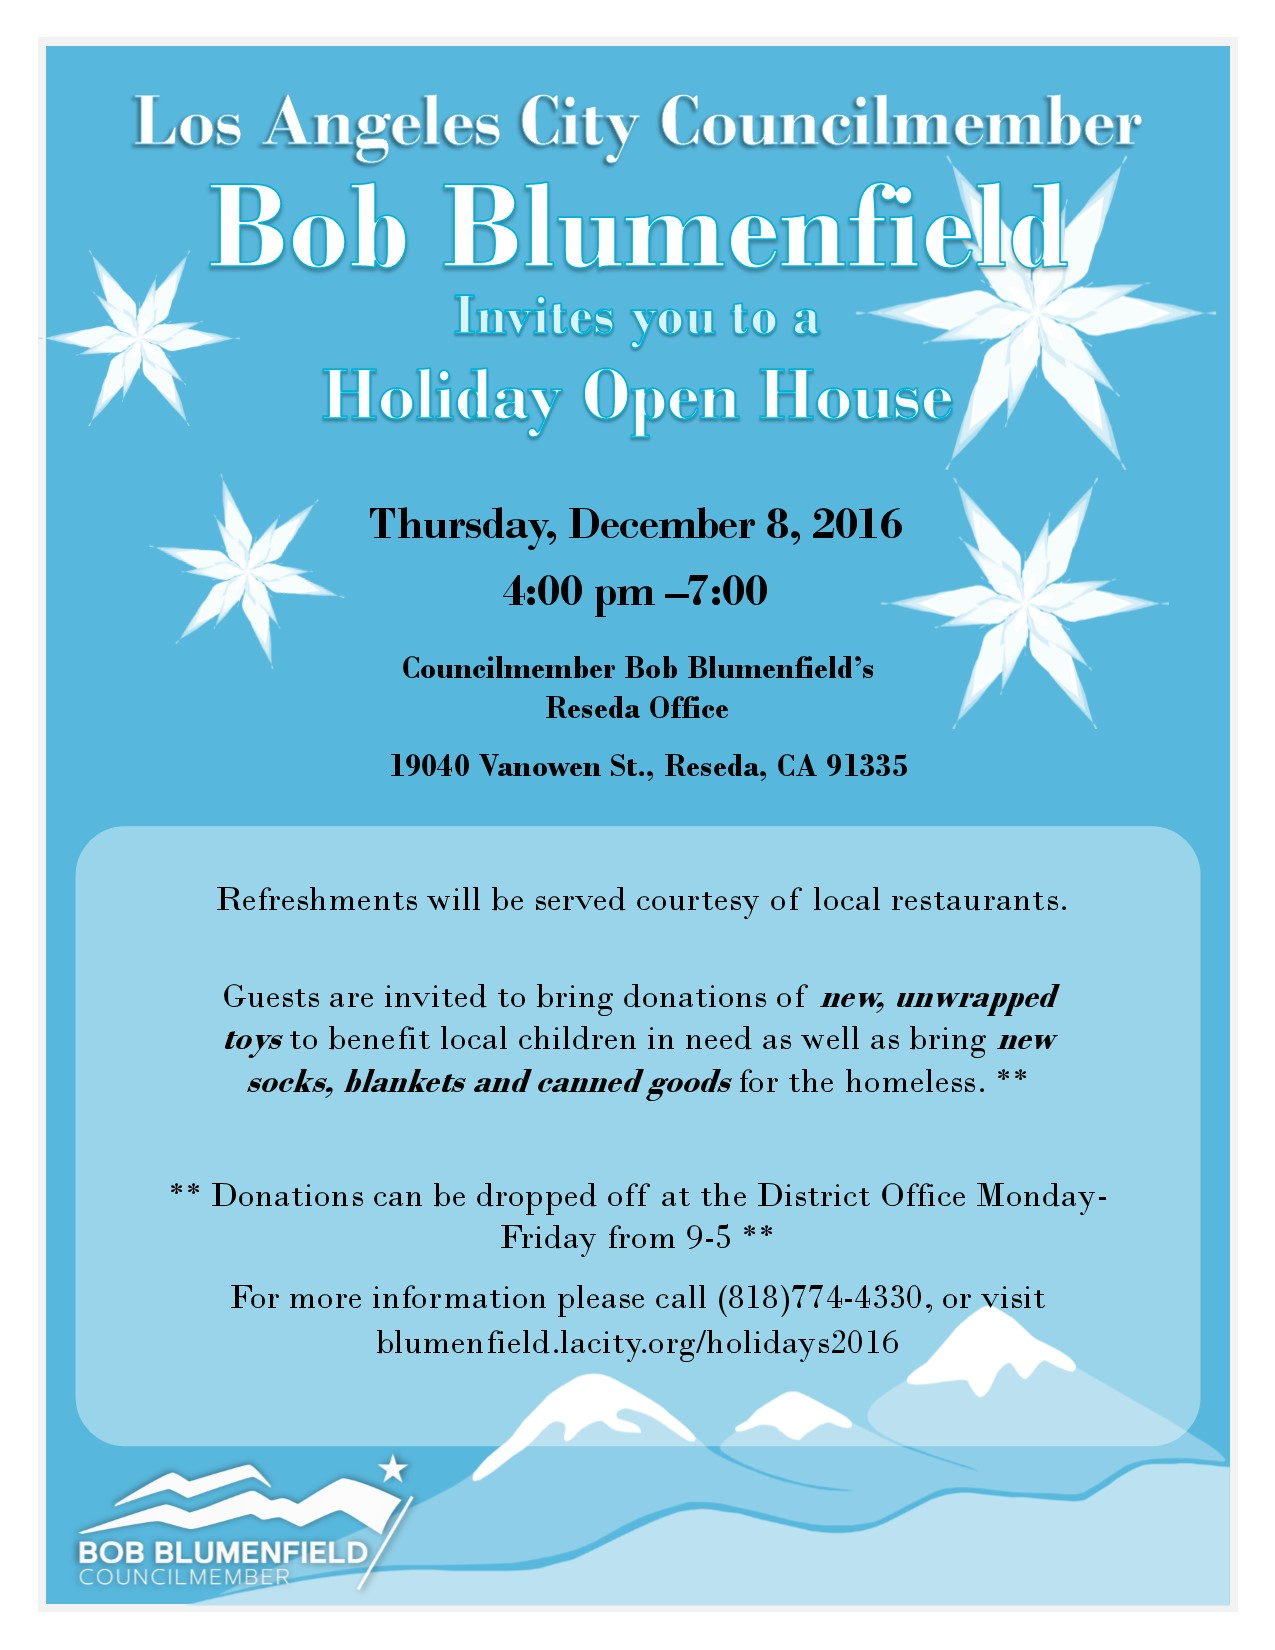 Invitation_Holiday_open_house_2016_final.jpg